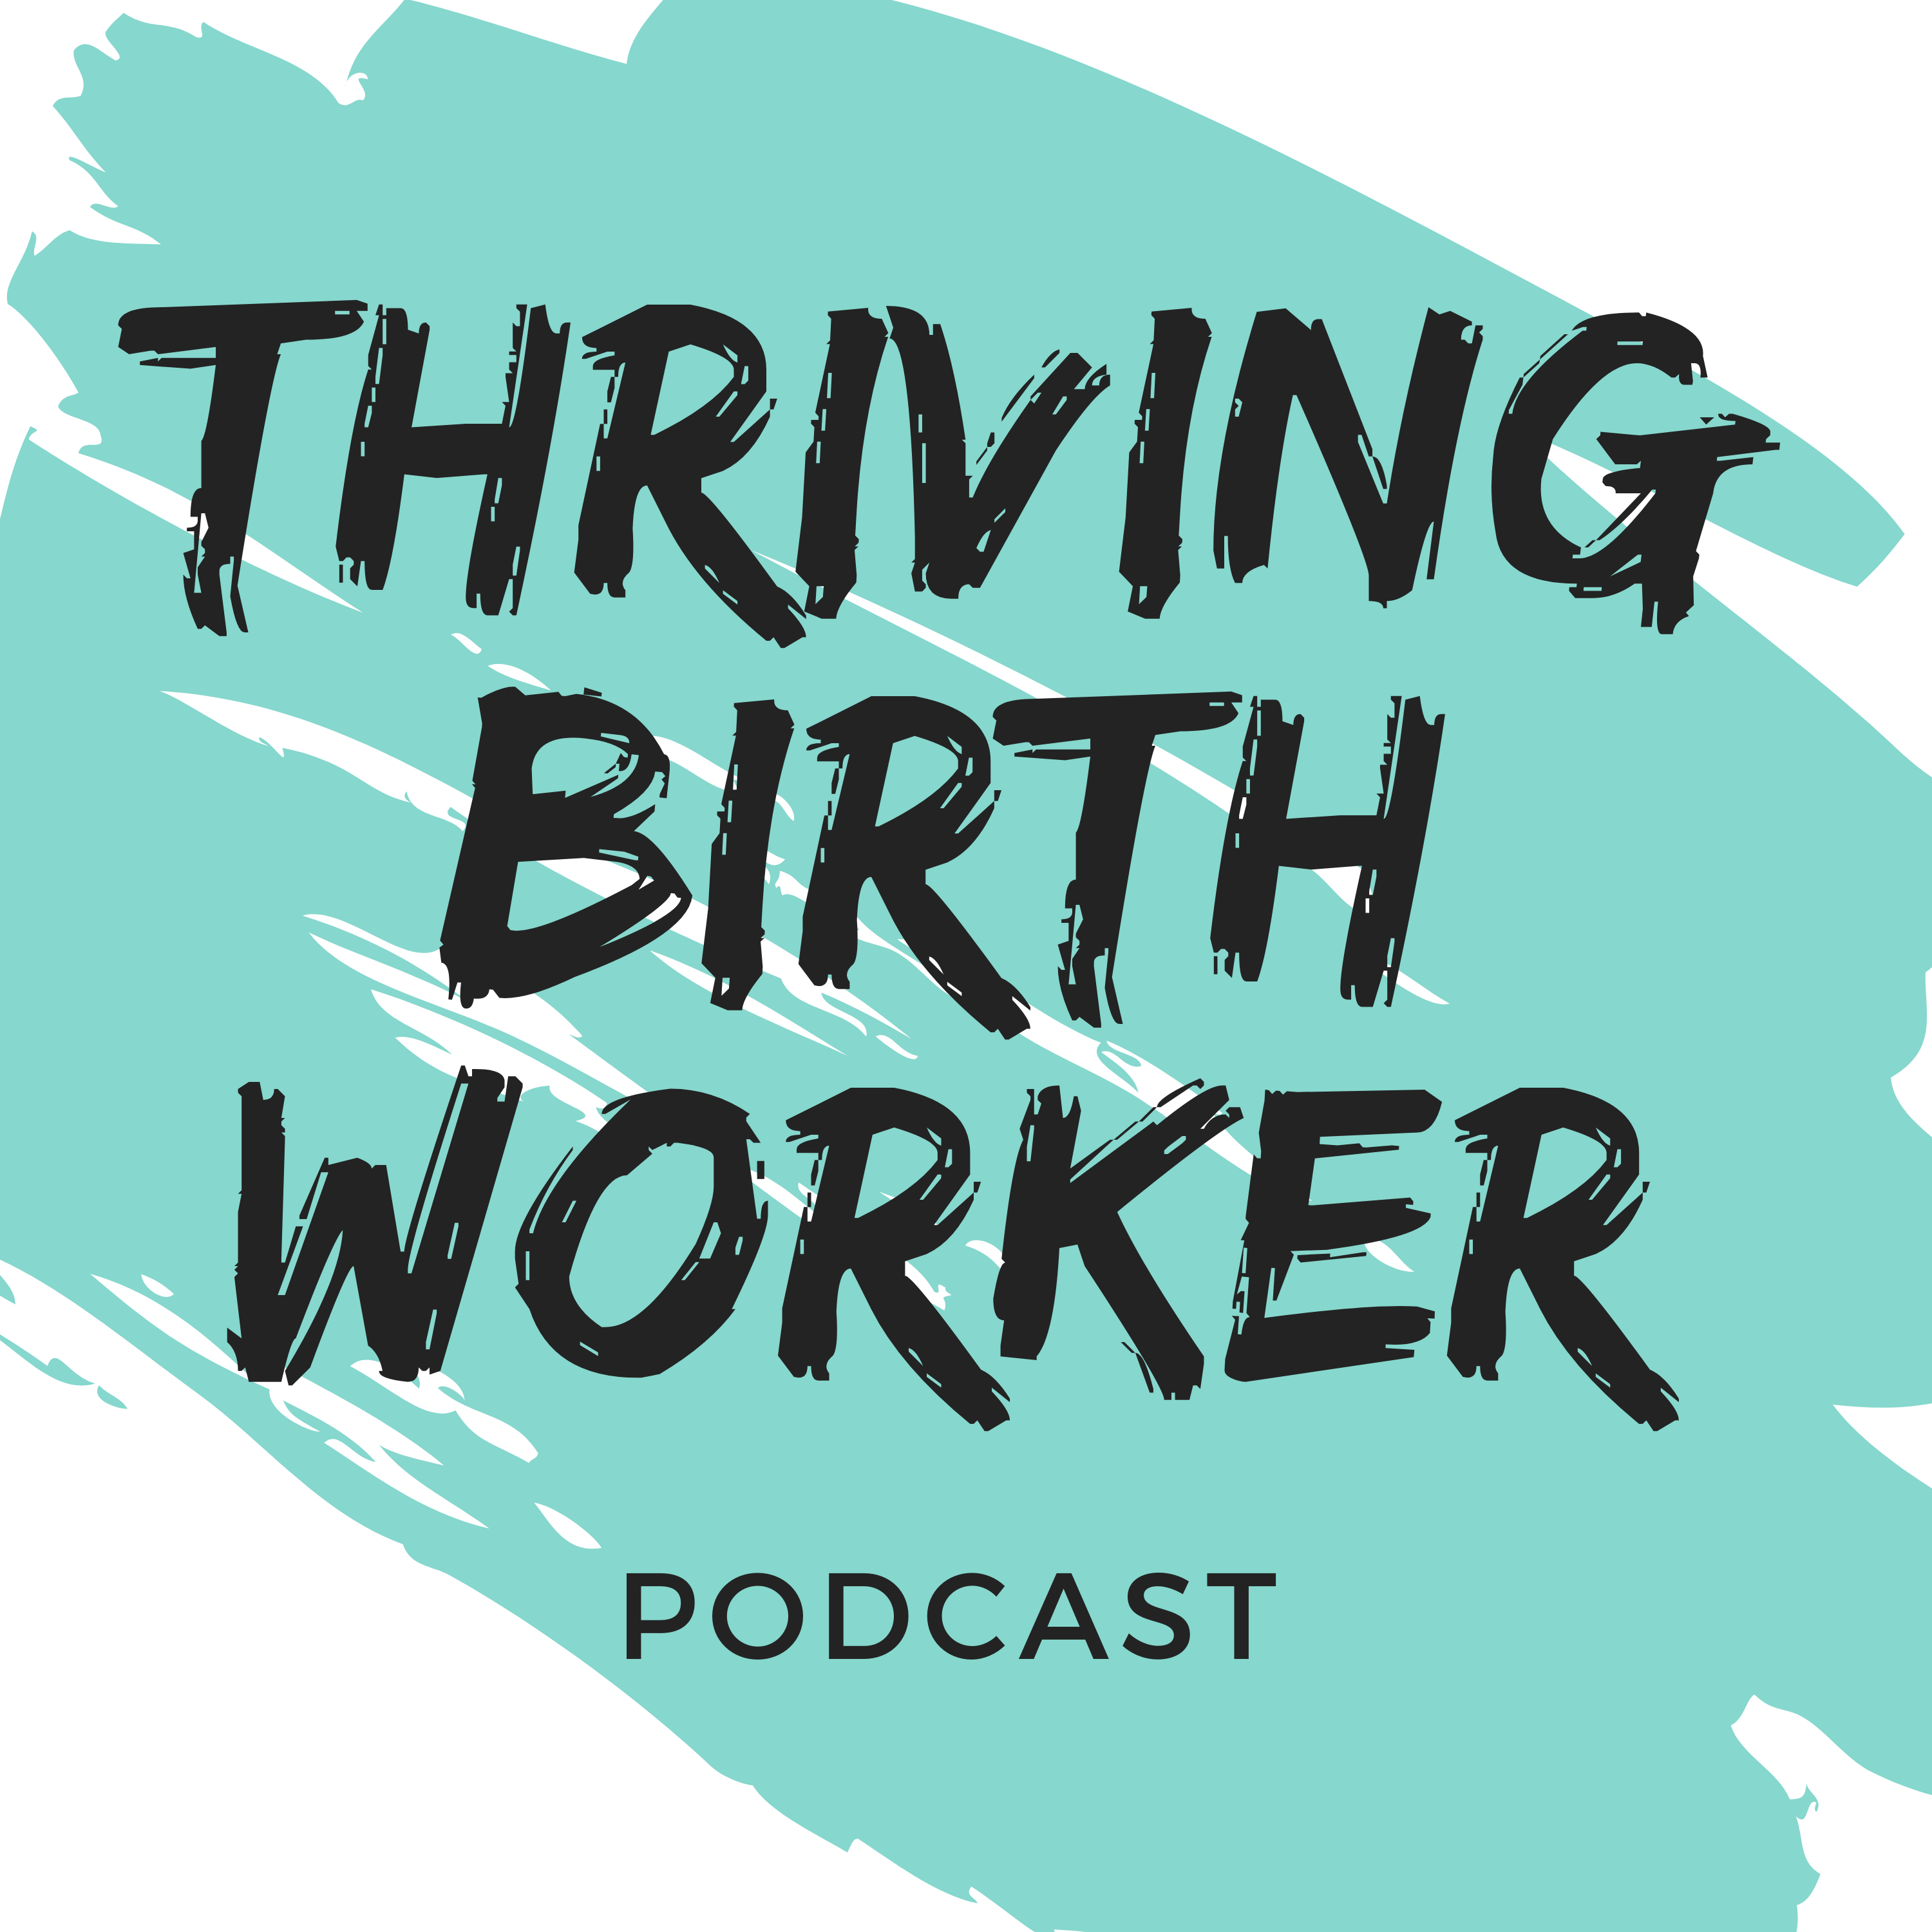 Artwork for 37. Thriving in Midwifery & Business with Hearth & Home Midwifery